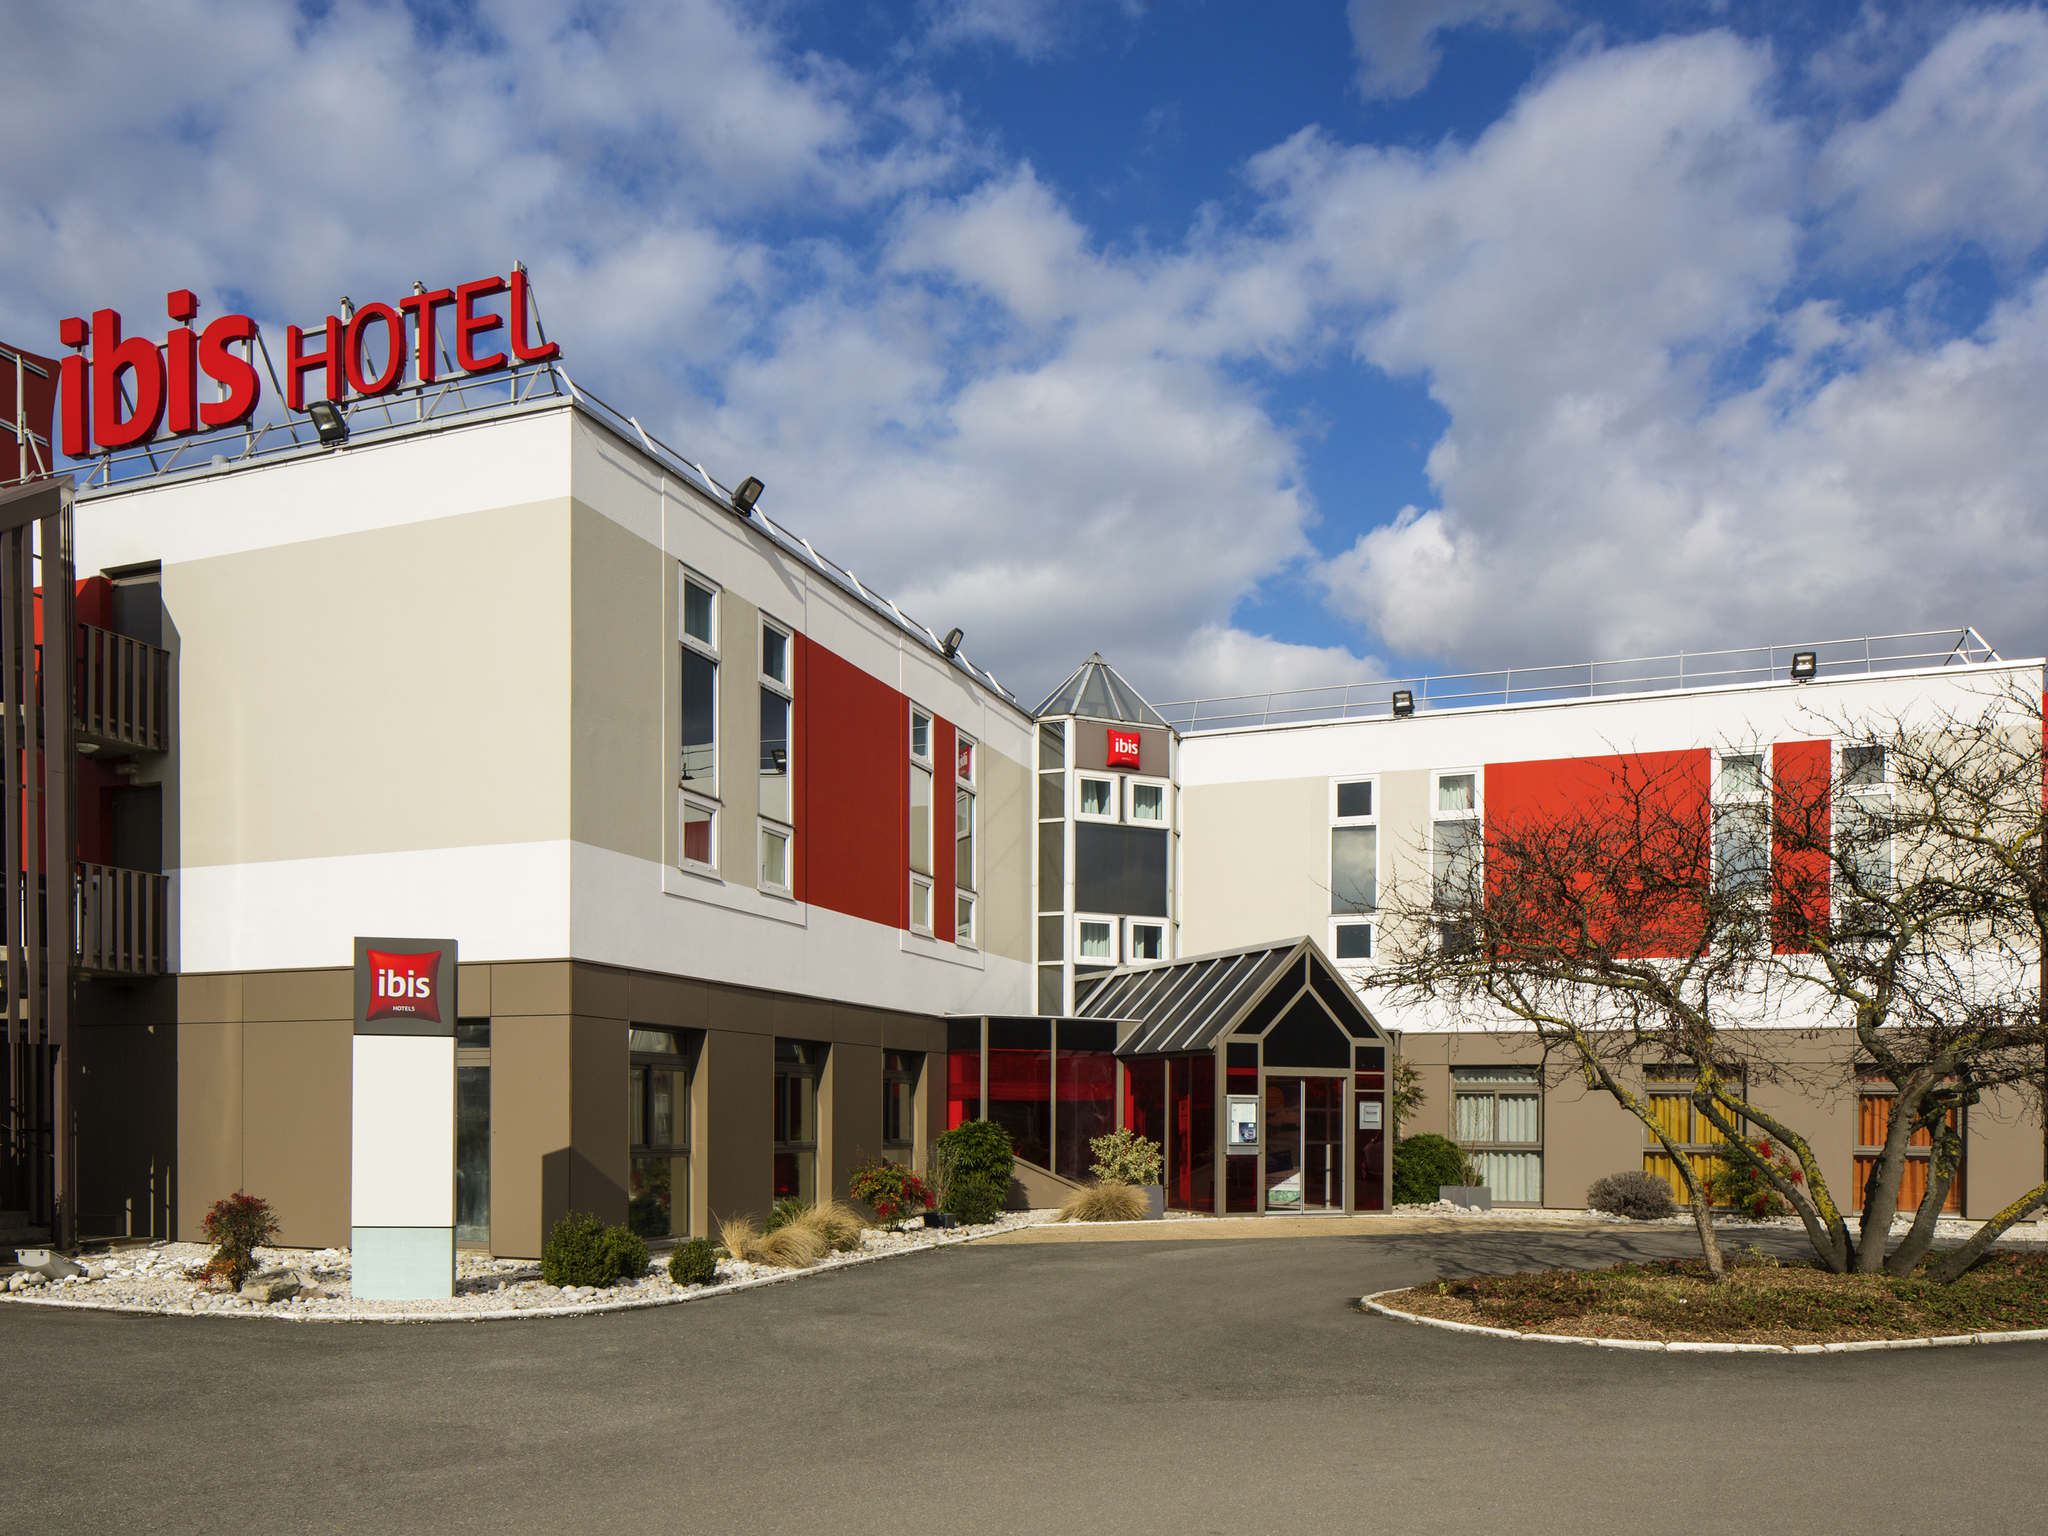 Hotel in AULNAY SOUS BOIS ibis Aulnay Paris Nord Expo # Sport Aulnay Sous Bois